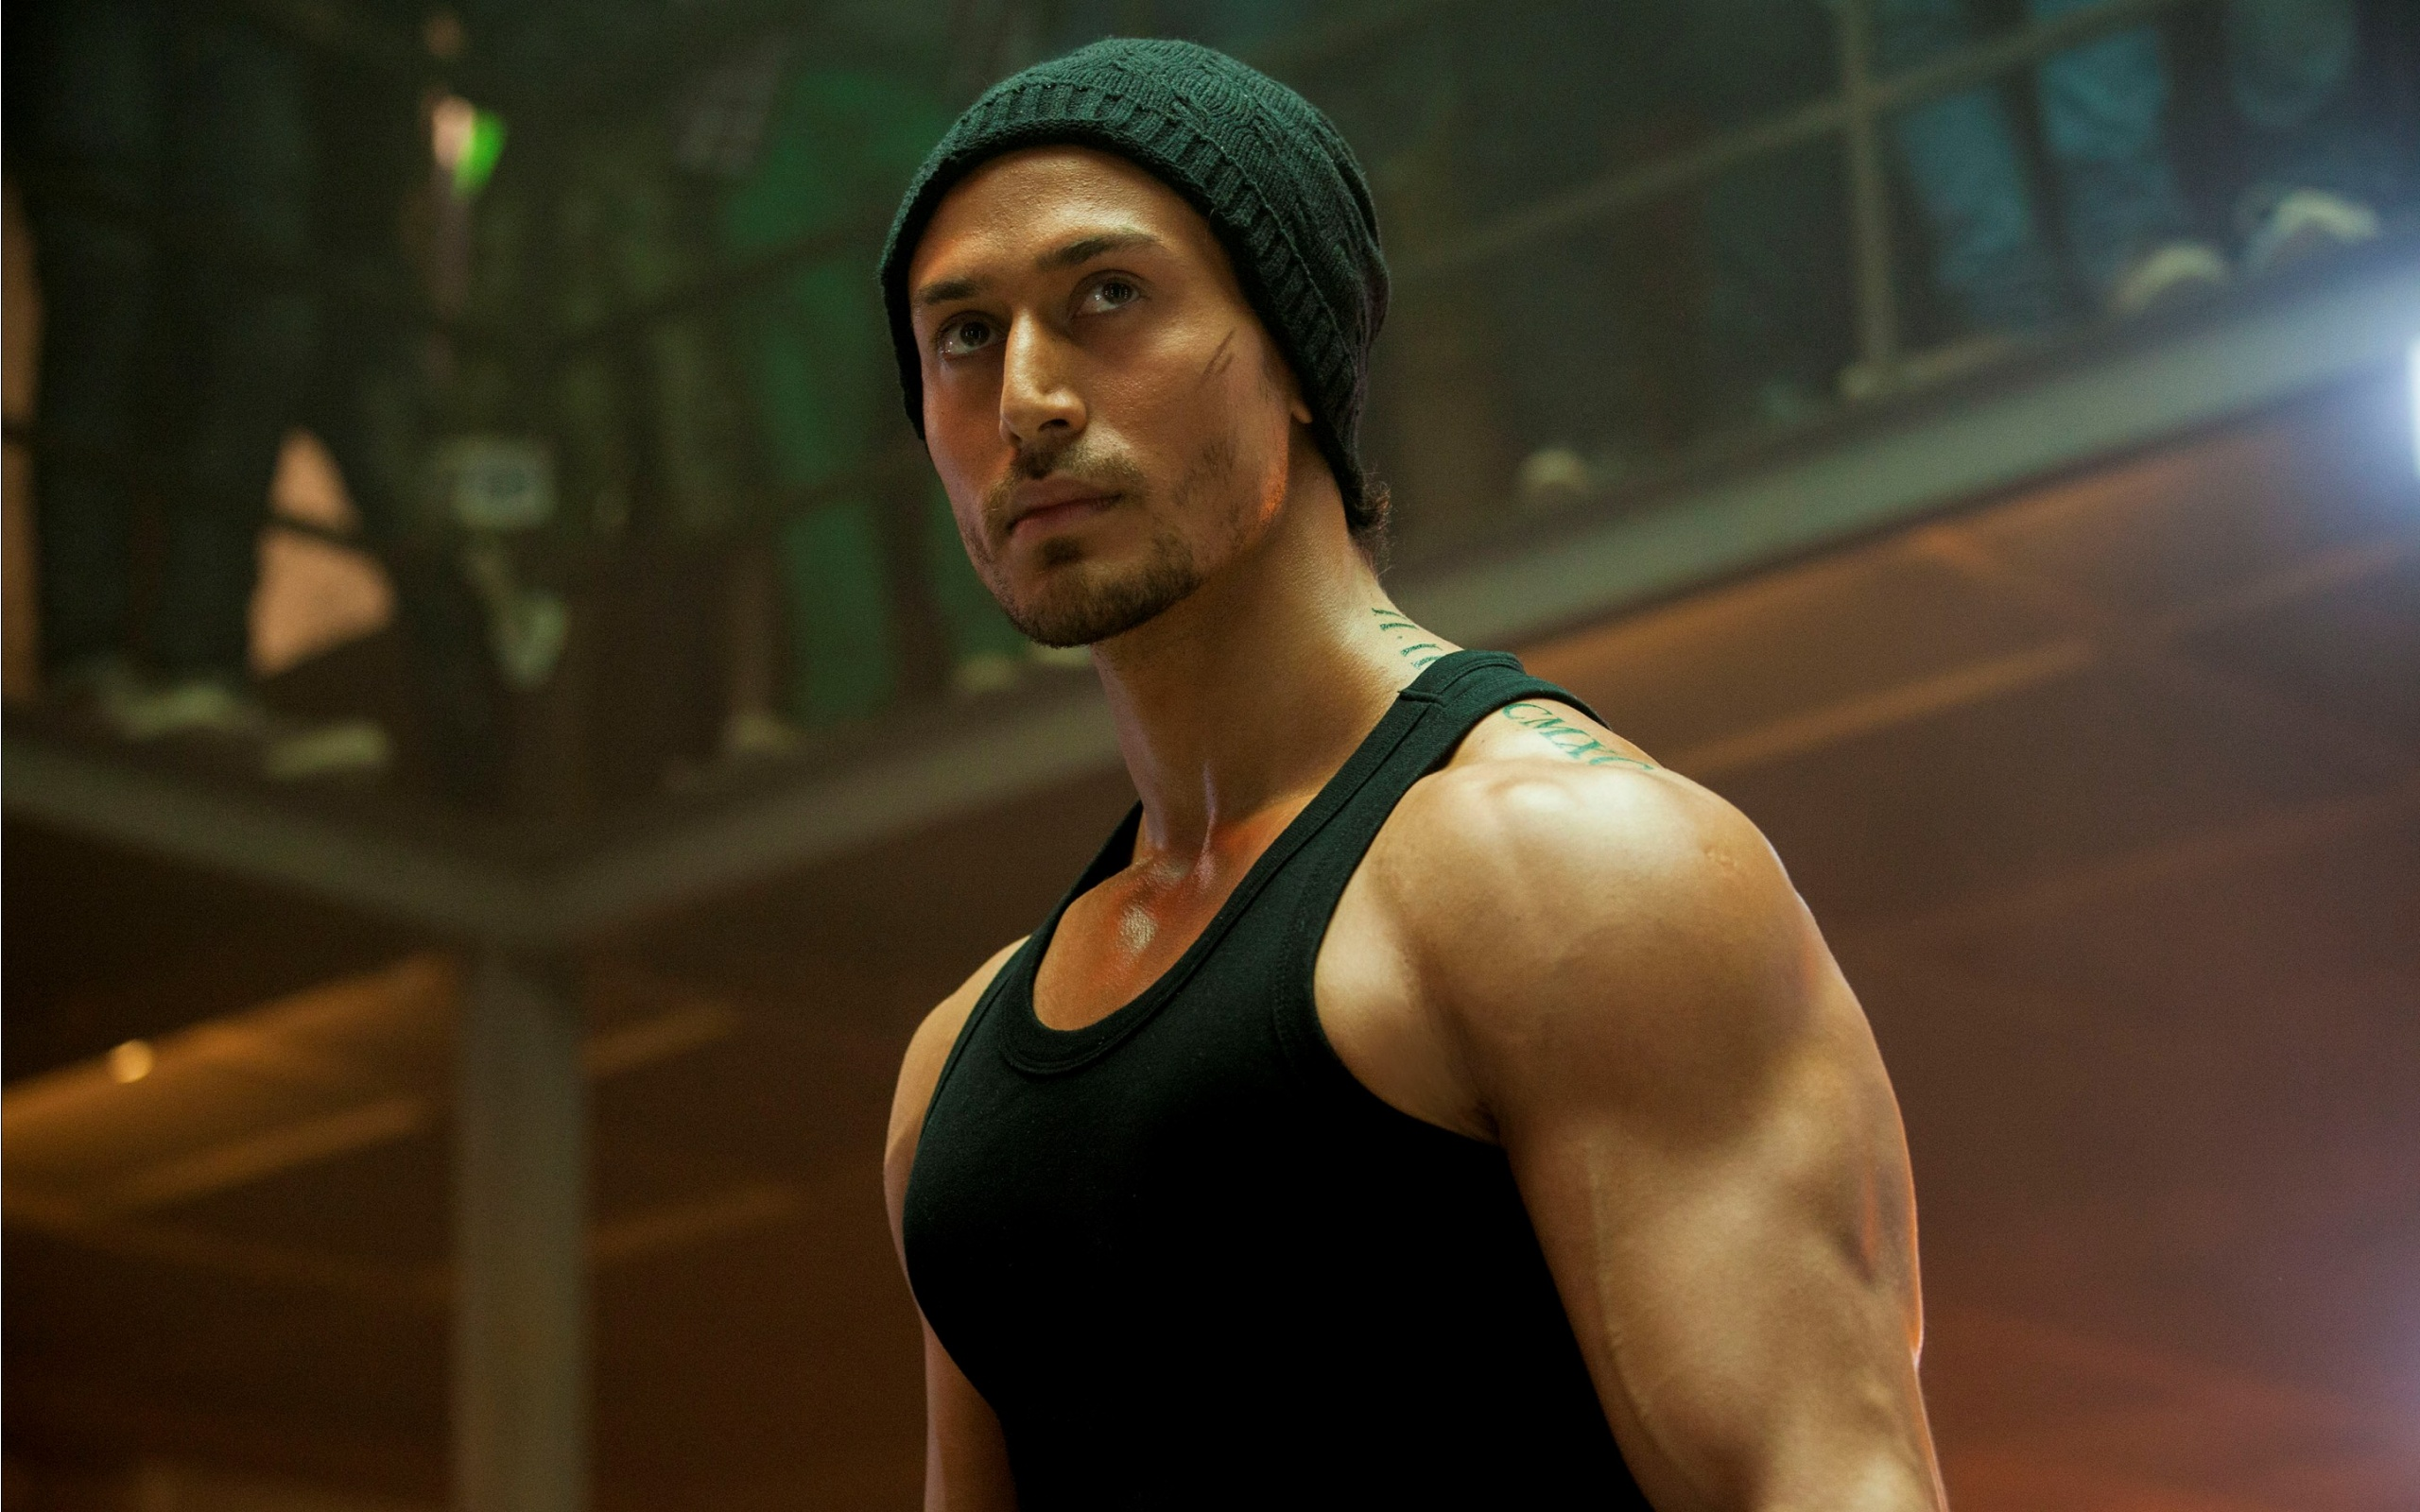 rebel look tiger shroff in baaghi wallpapers - 2560x1600 - 1092402